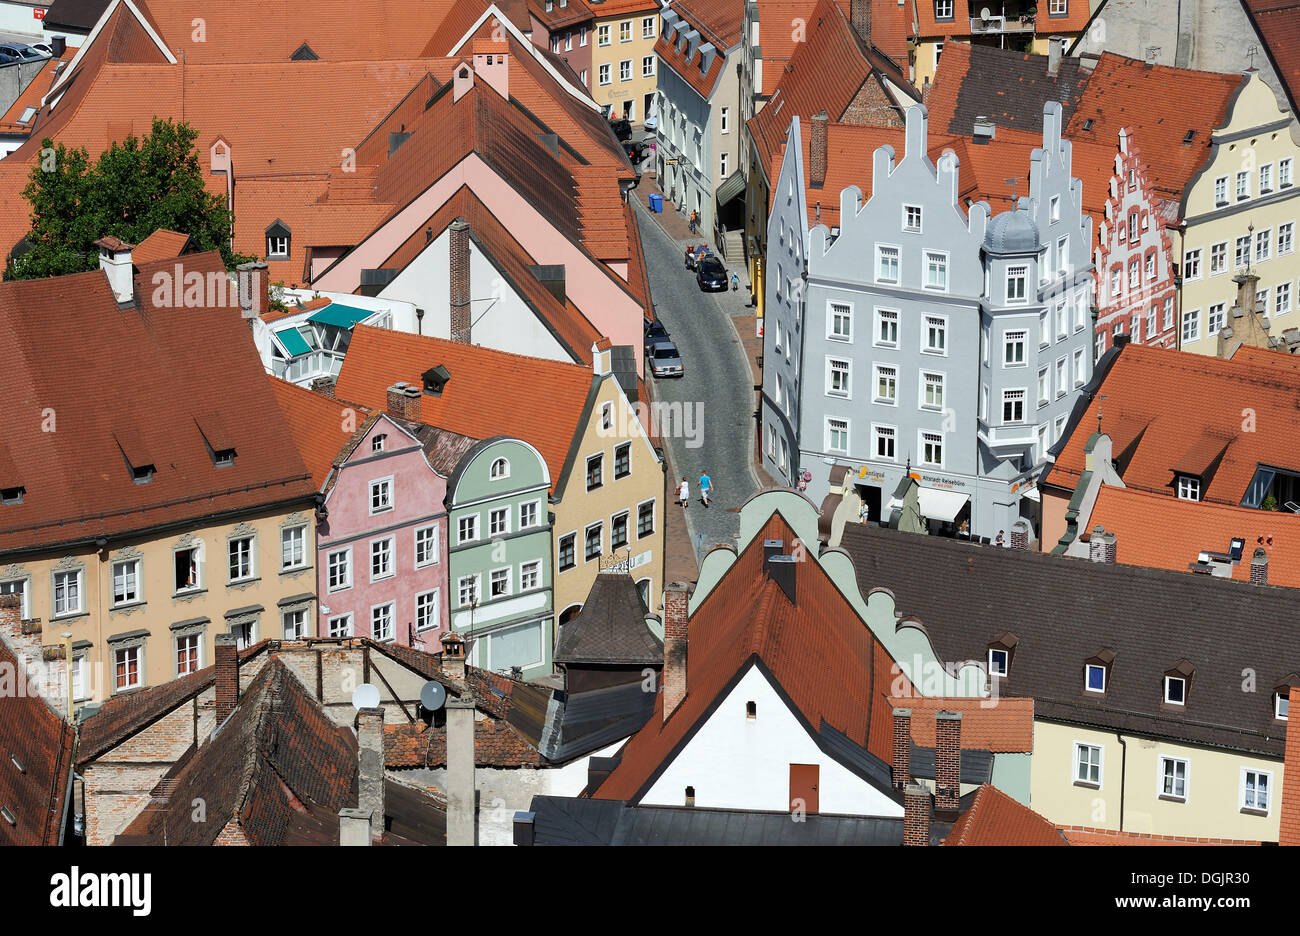 Houses and winding streets, historic town centre of Landshut, Lower Bavaria, Bavaria - Stock Image